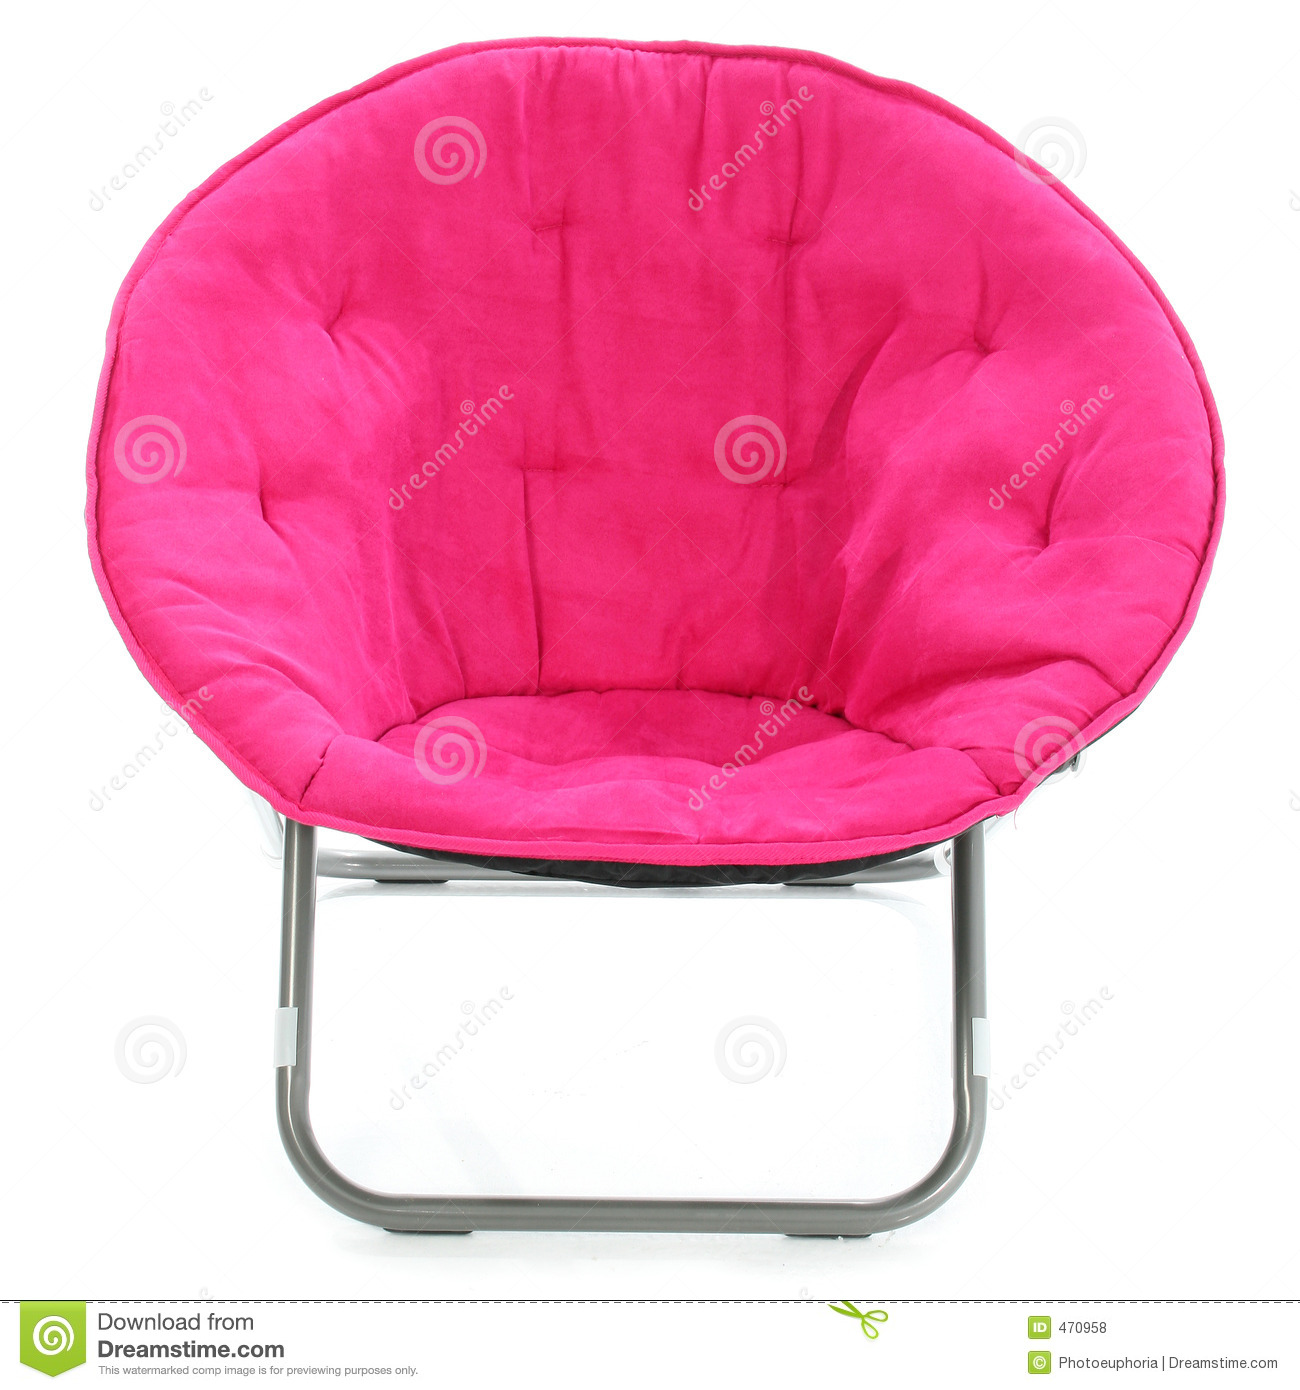 Pink Fluffy Chair Hot Pink Chair Over White Stock Photo Image Of Fabric